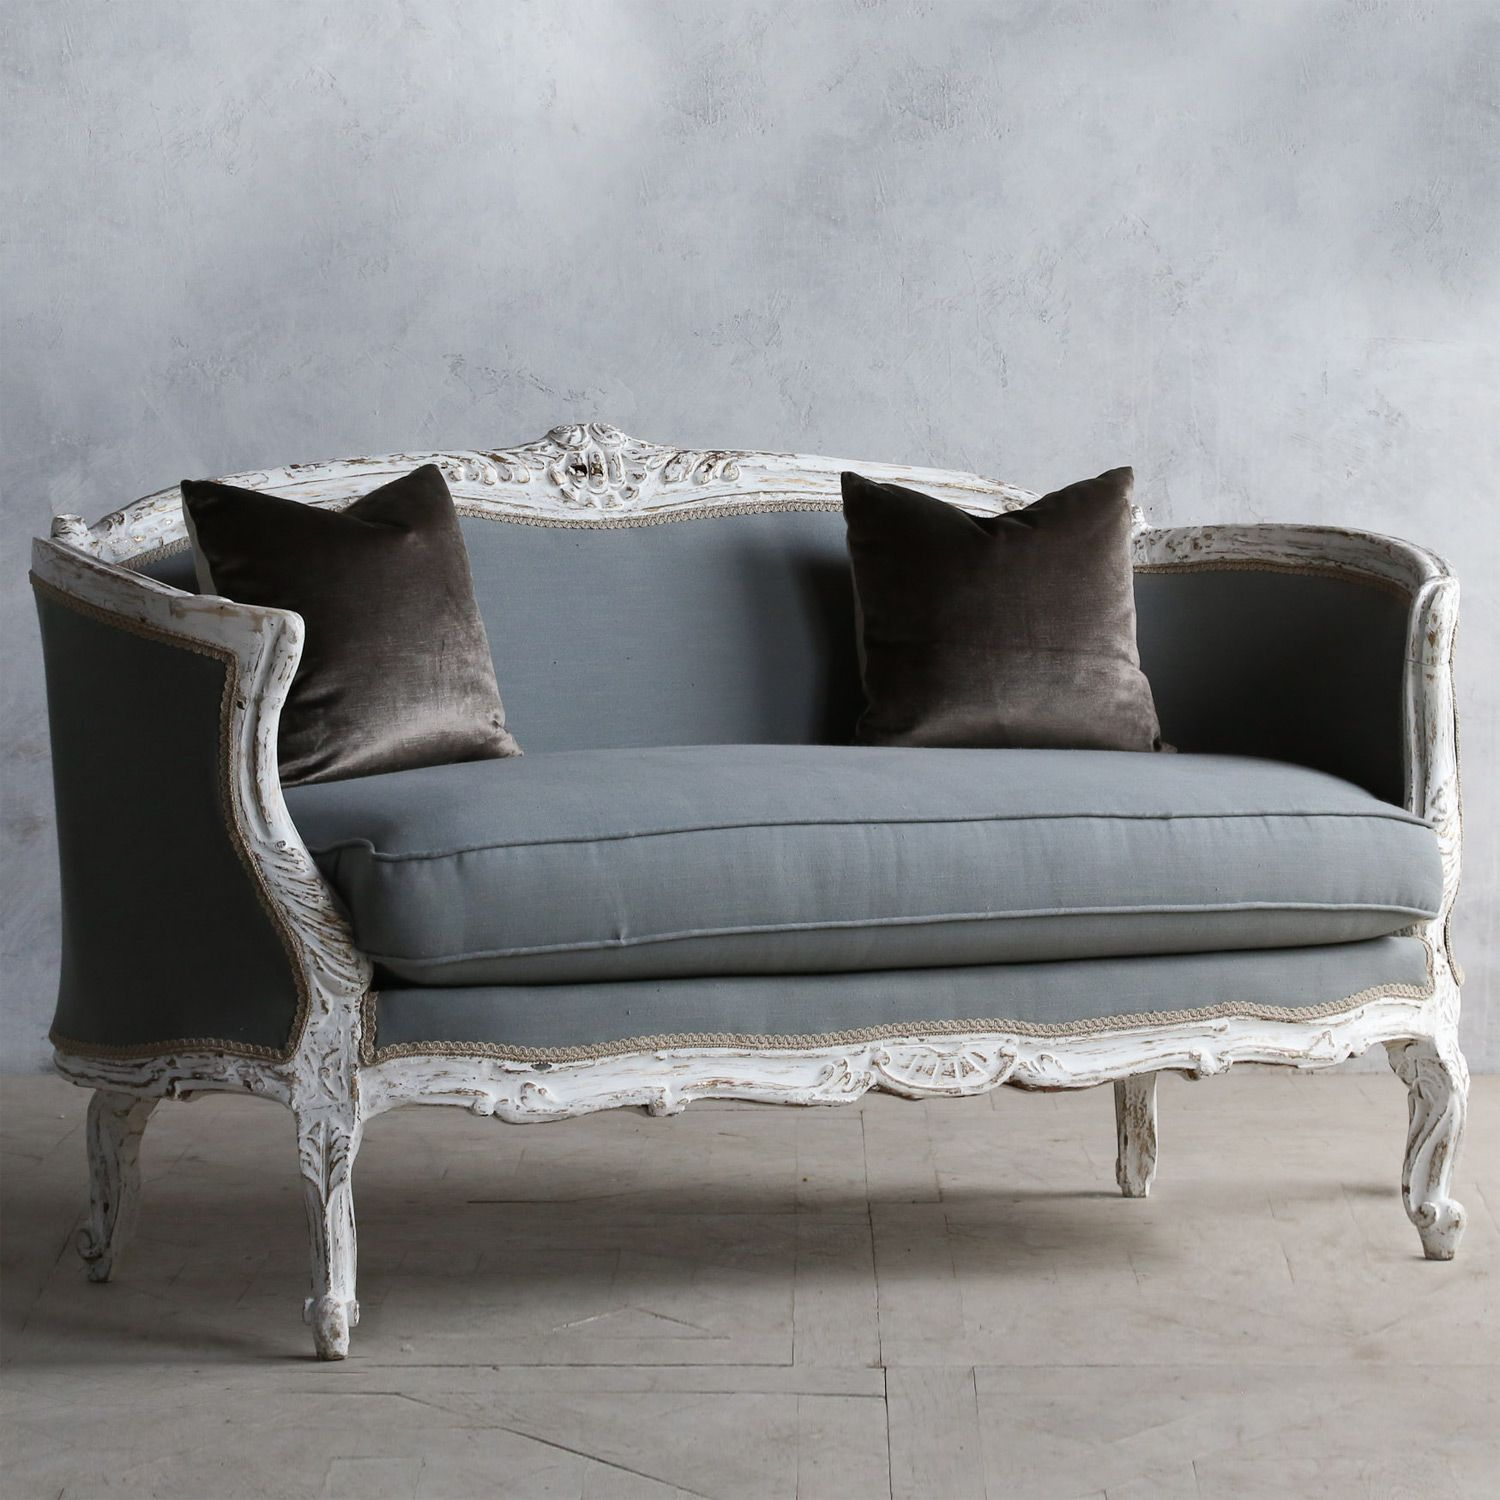 Antique Sofa Loveseat: Eloquence One Of A Kind Vintage Settee Louis XV Antique